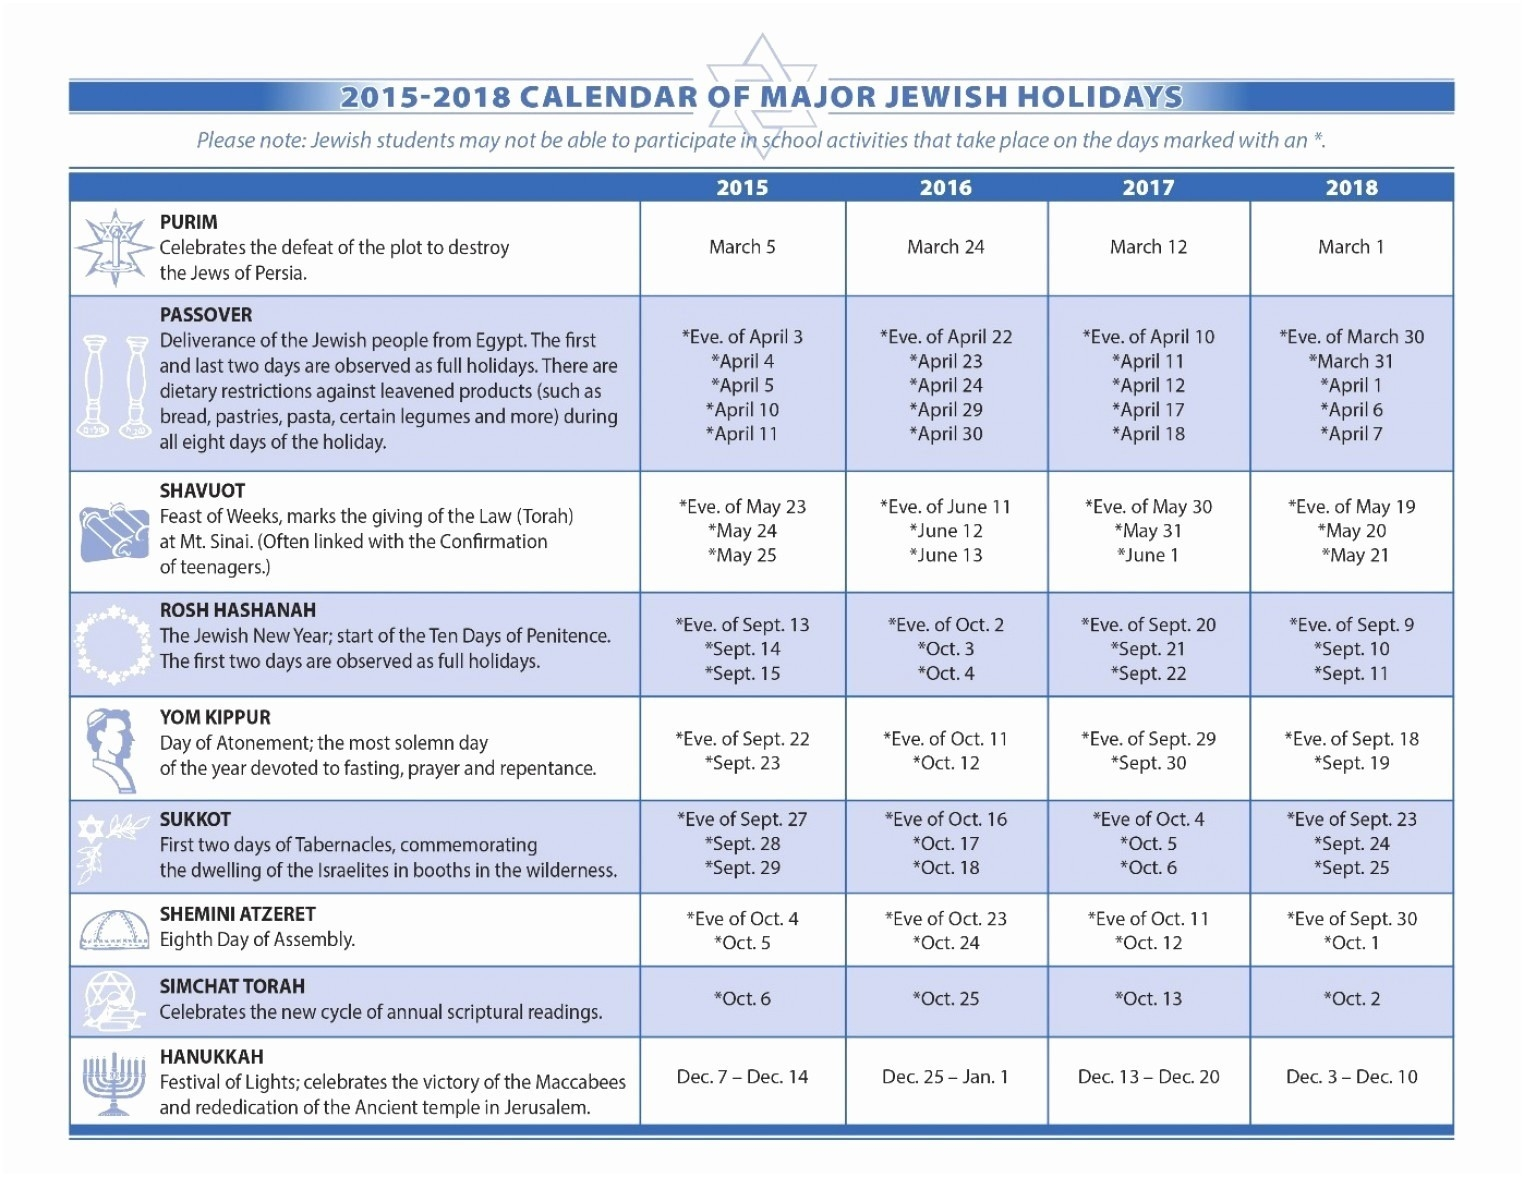 Calendar With Jewish Holidays 2018 Hebrew Calendar 2017-Dates Of Jewish Holidays